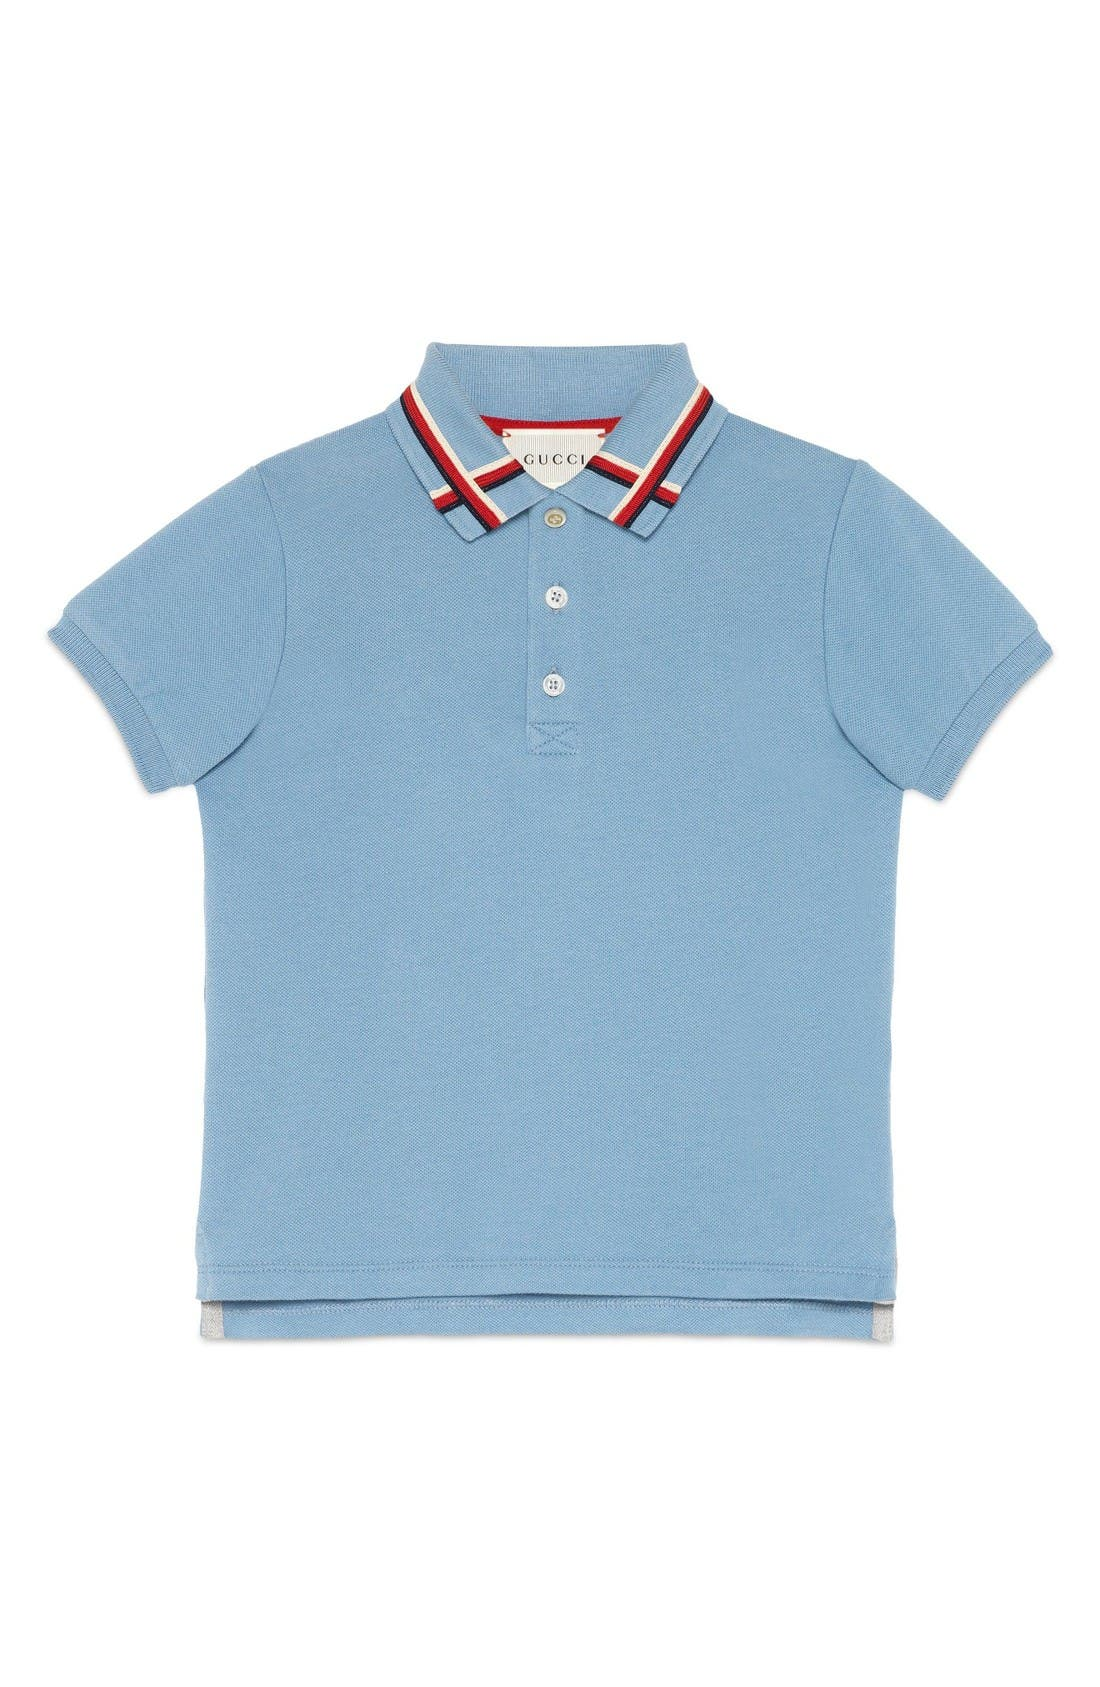 GUCCI Ribbon Polo